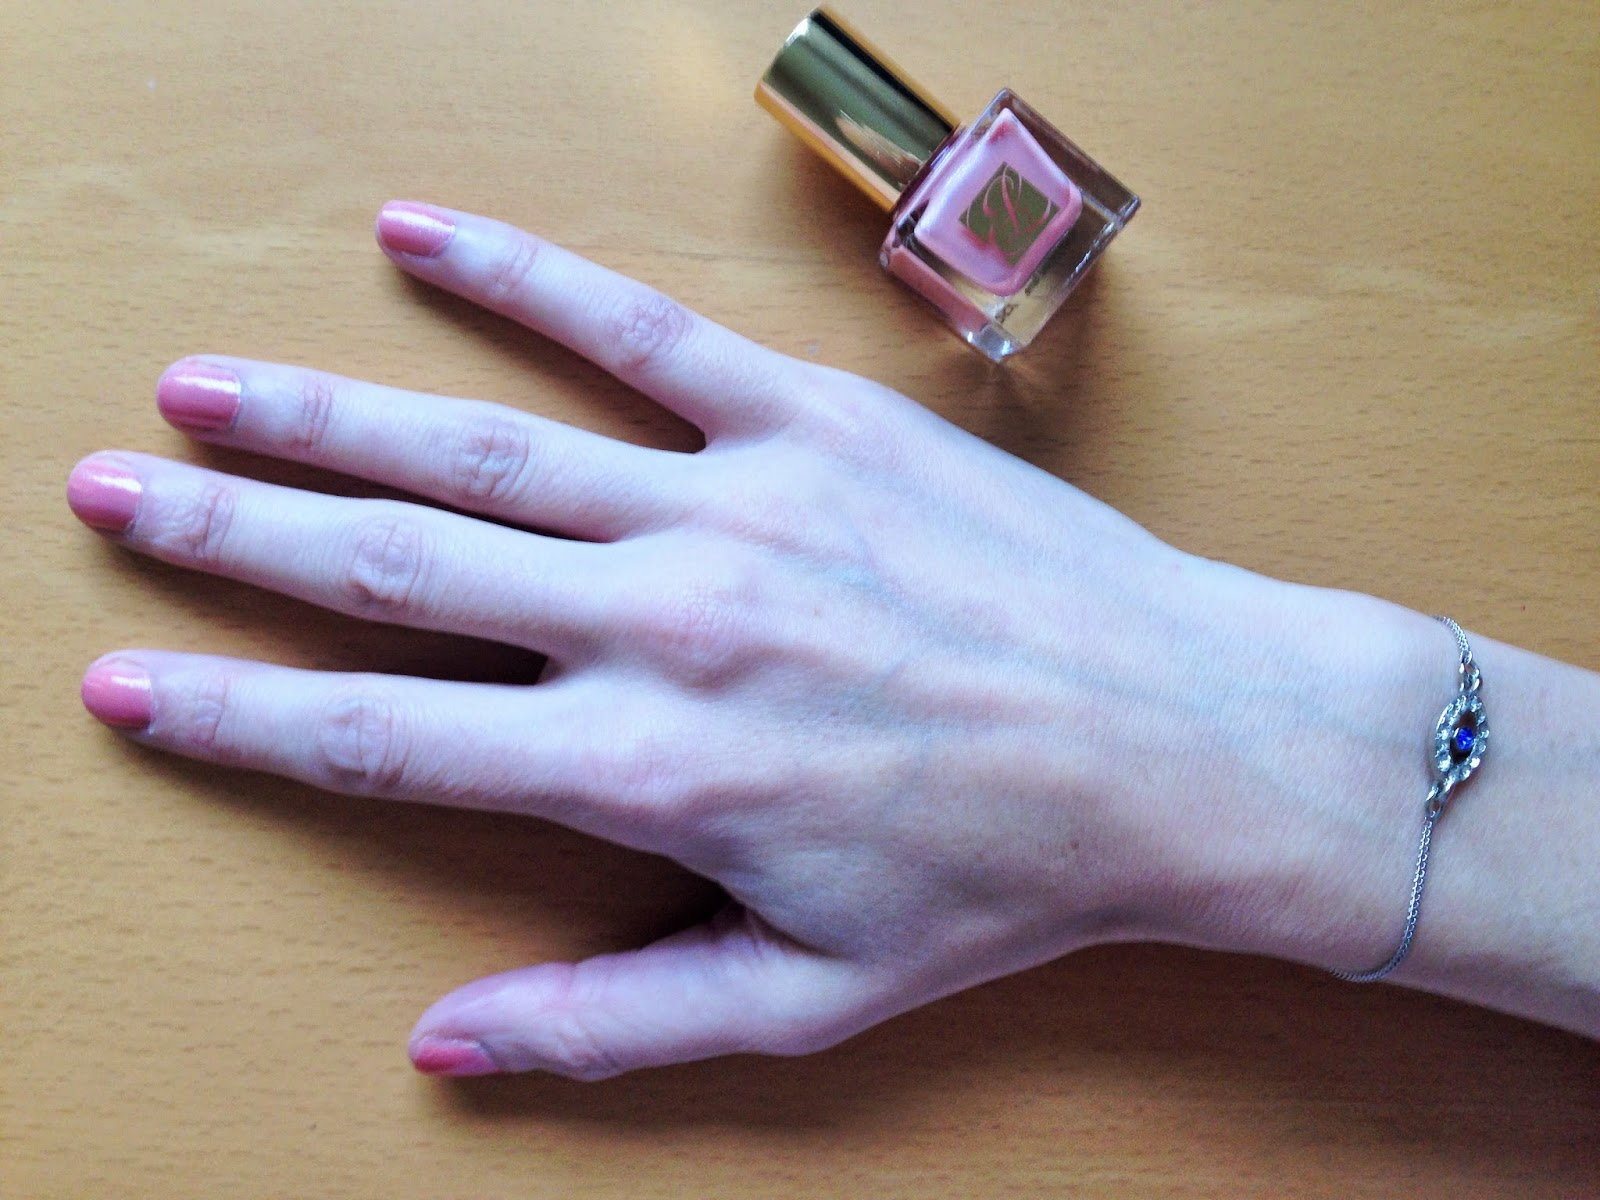 Estee Lauder Nail Lacquer in Blushing Lilac